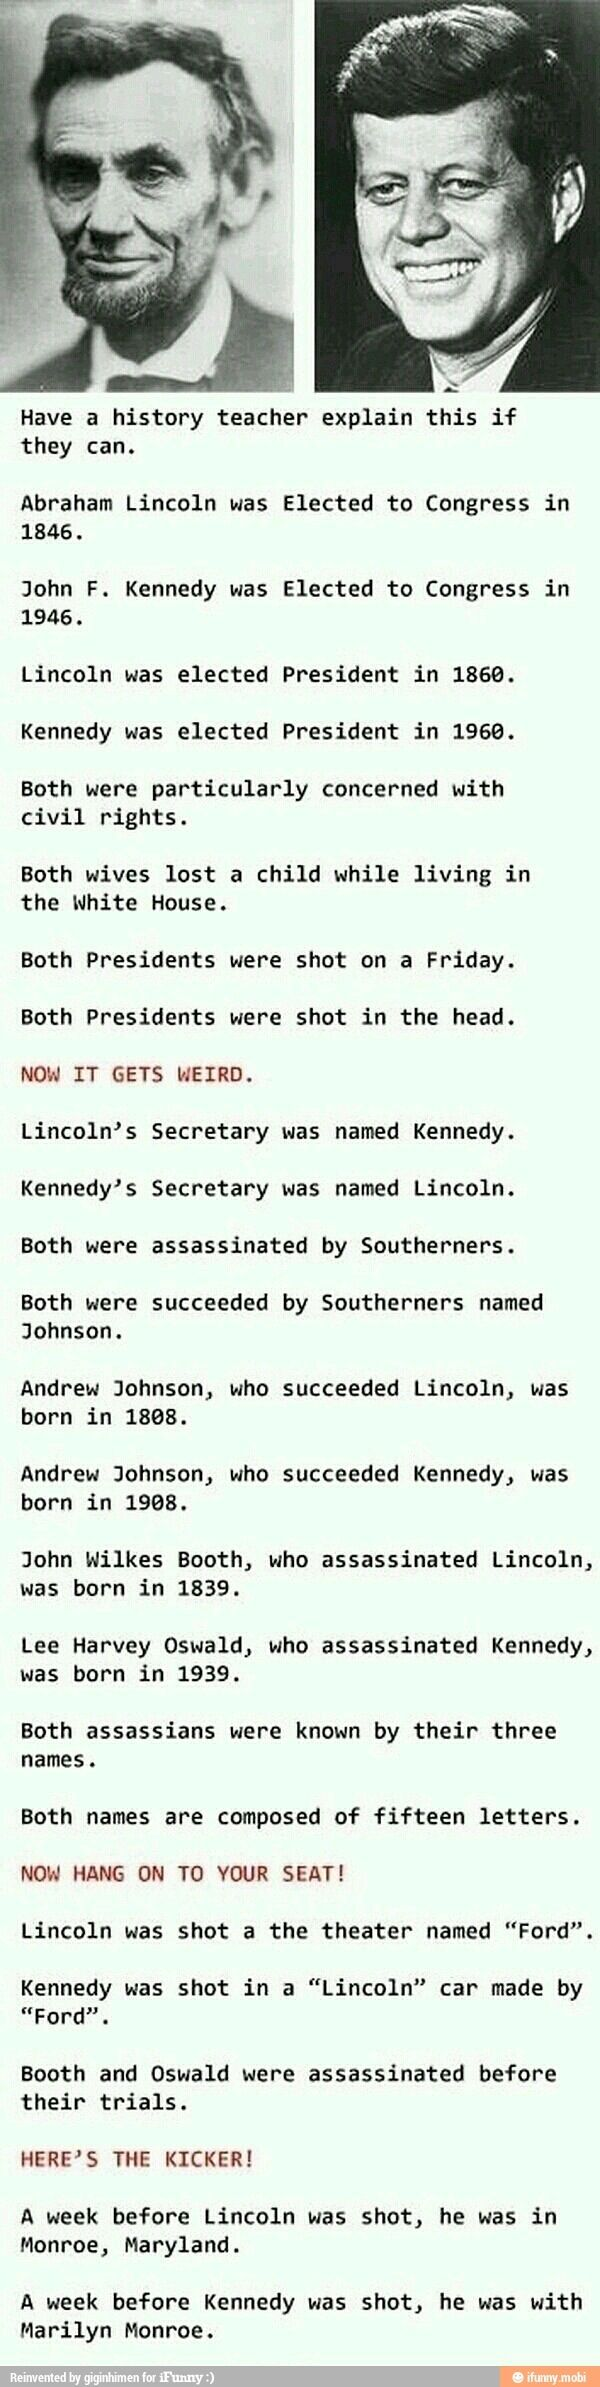 The similarities between Abraham Lincoln and John F. Kennedy. Read all the way down. It's starts out kind of boring but gets weirder and weirder. This is so crazy. My mind is literally blown. To bits. No joke.